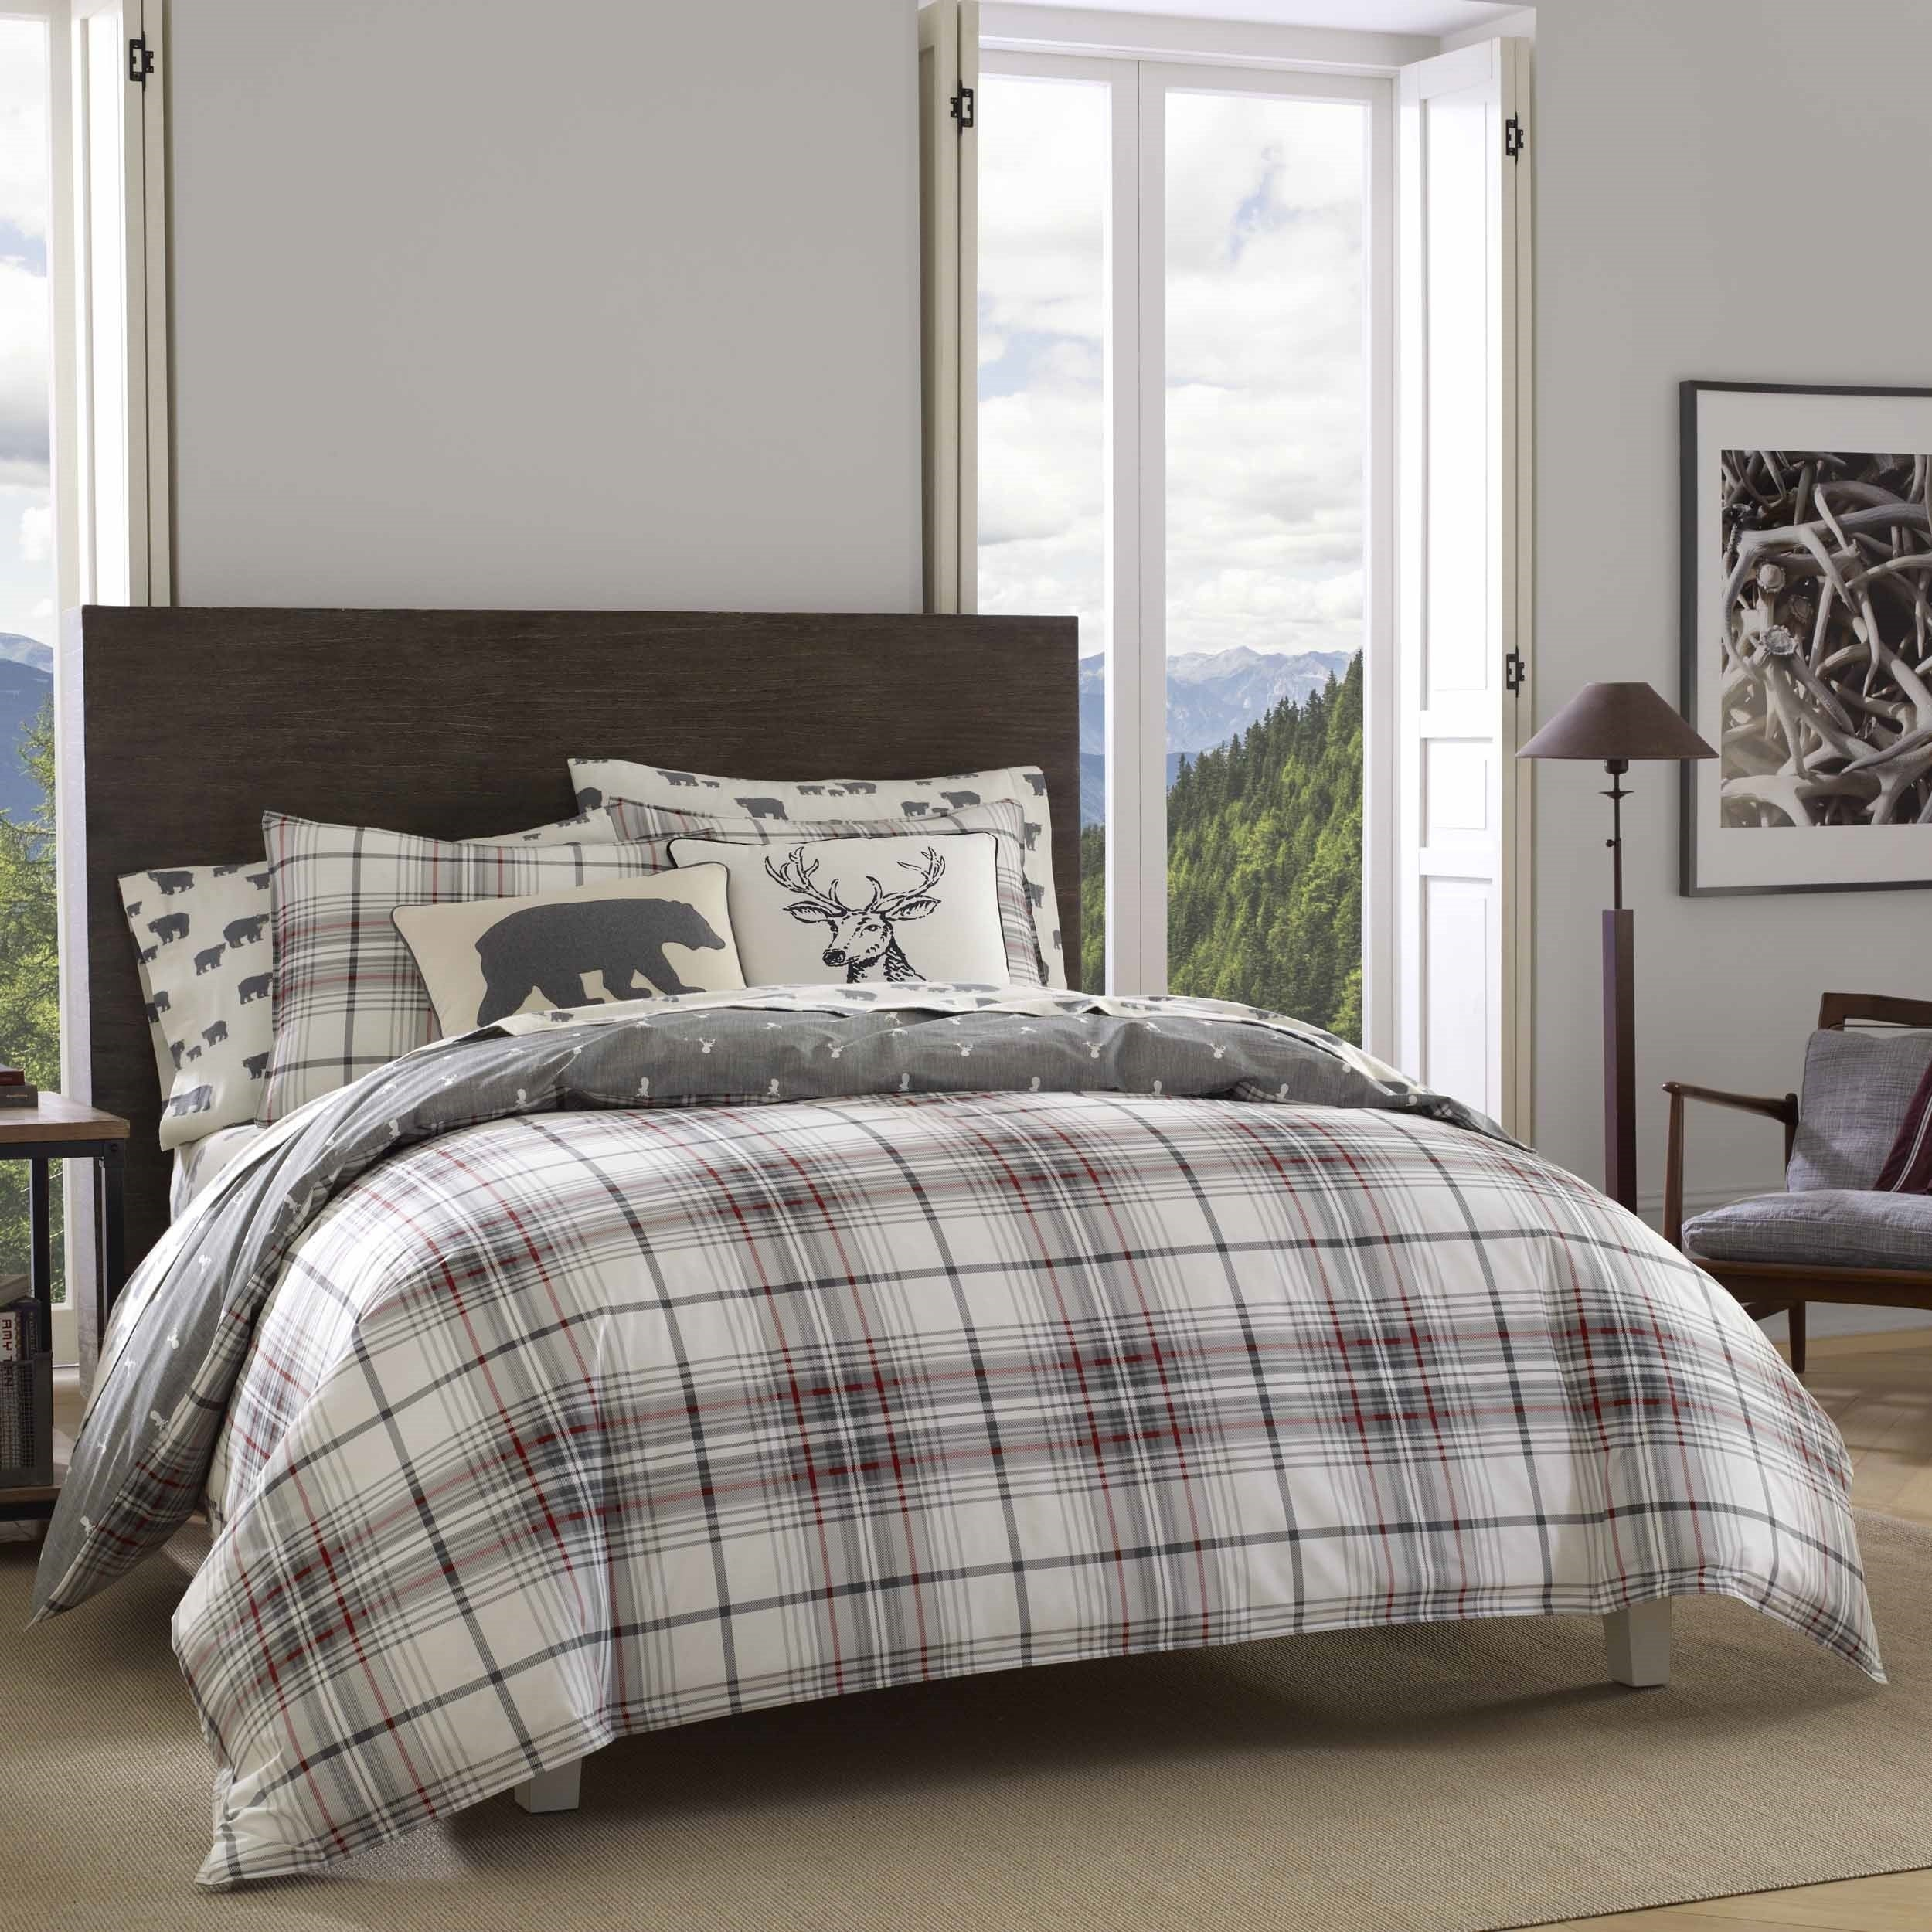 country bear set carstens inc sagamore lake copy plaid bedding product comforter